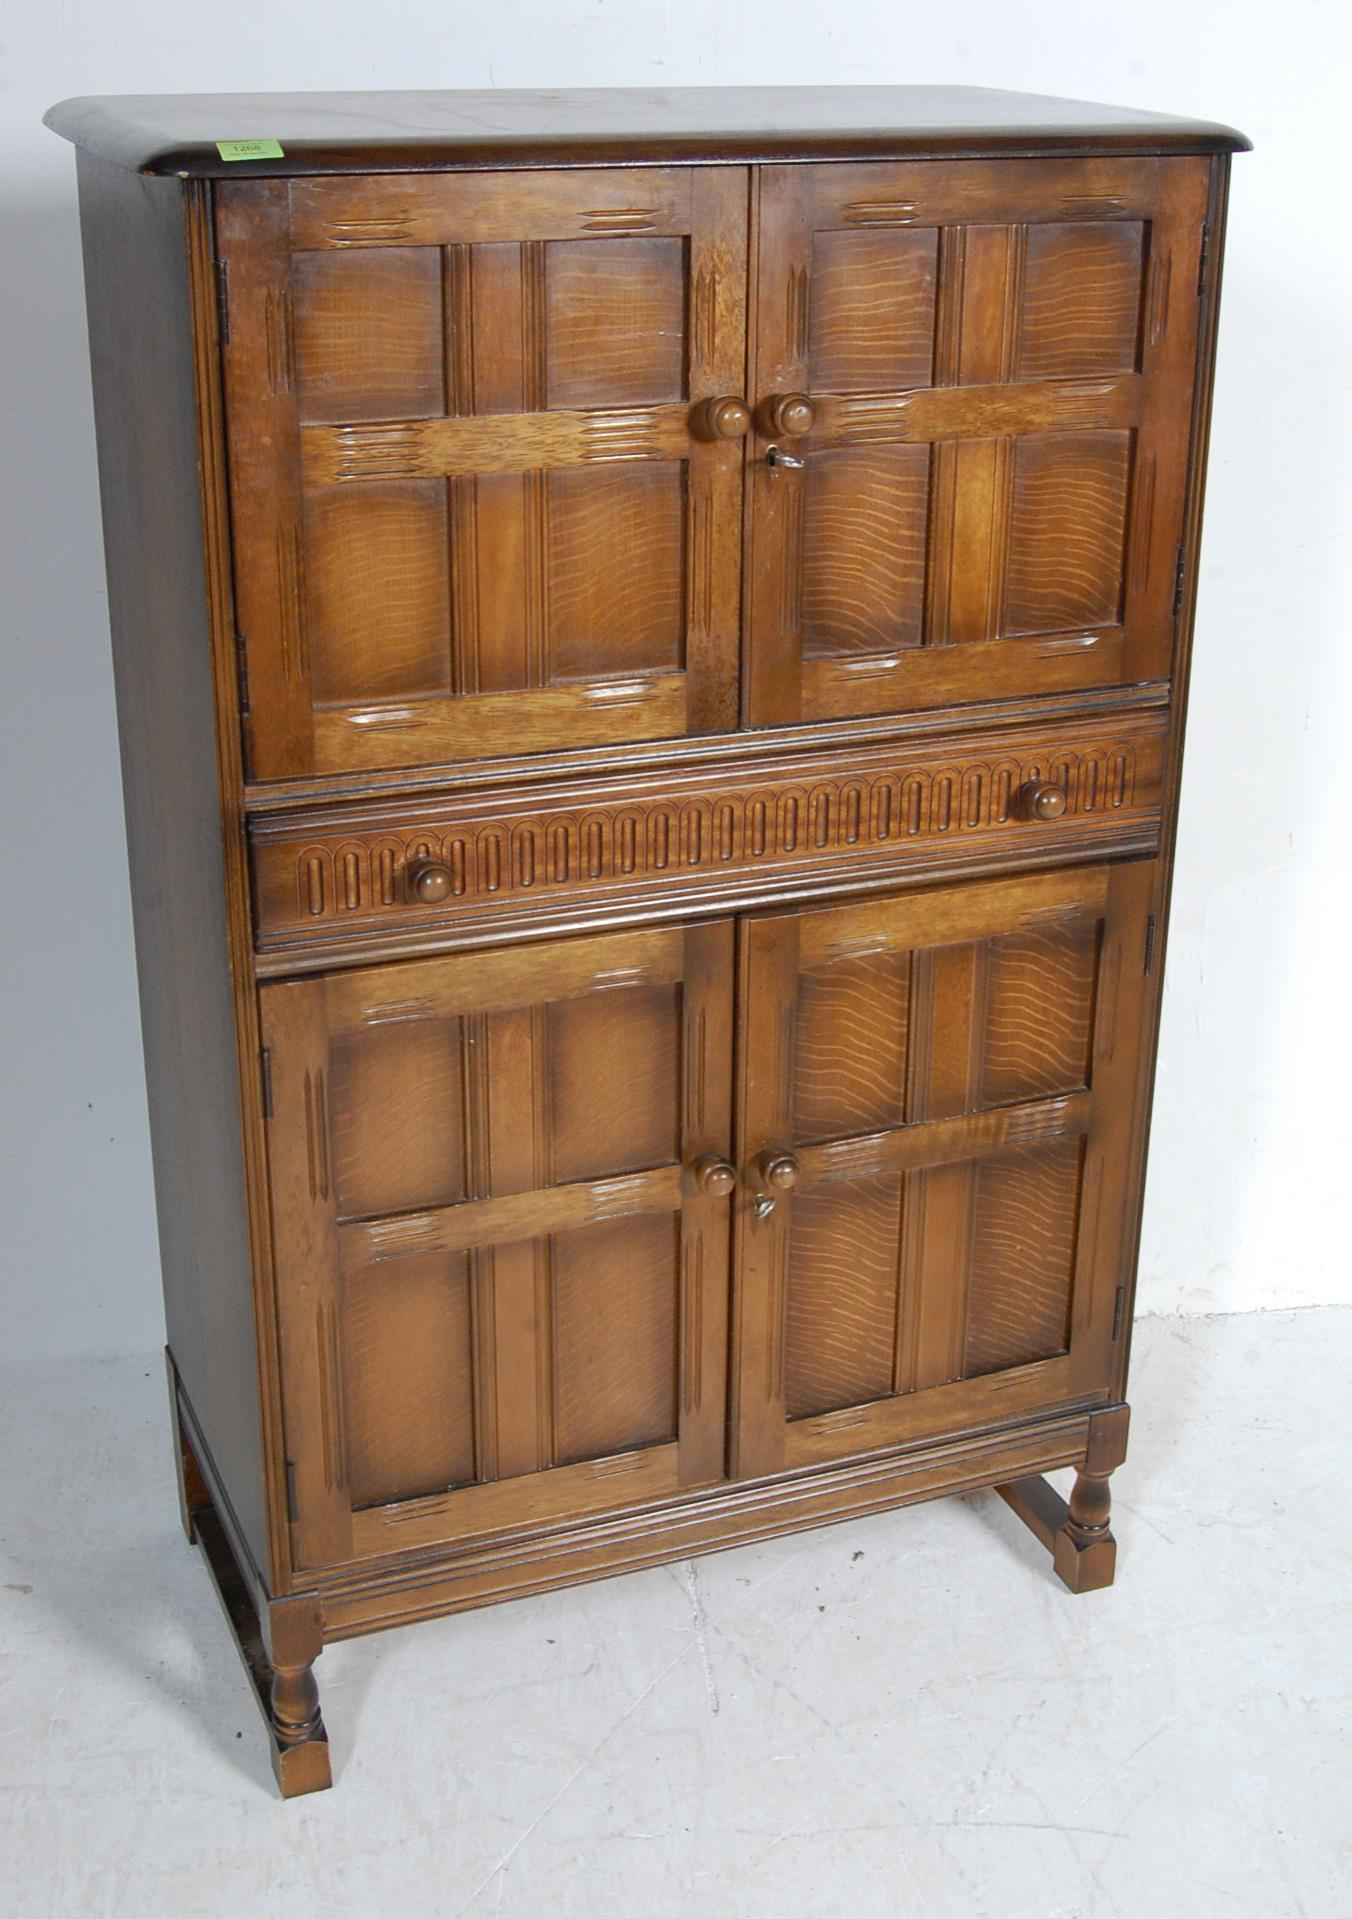 MID CENTURY OAK COCKTAIL CABINET - Image 2 of 6